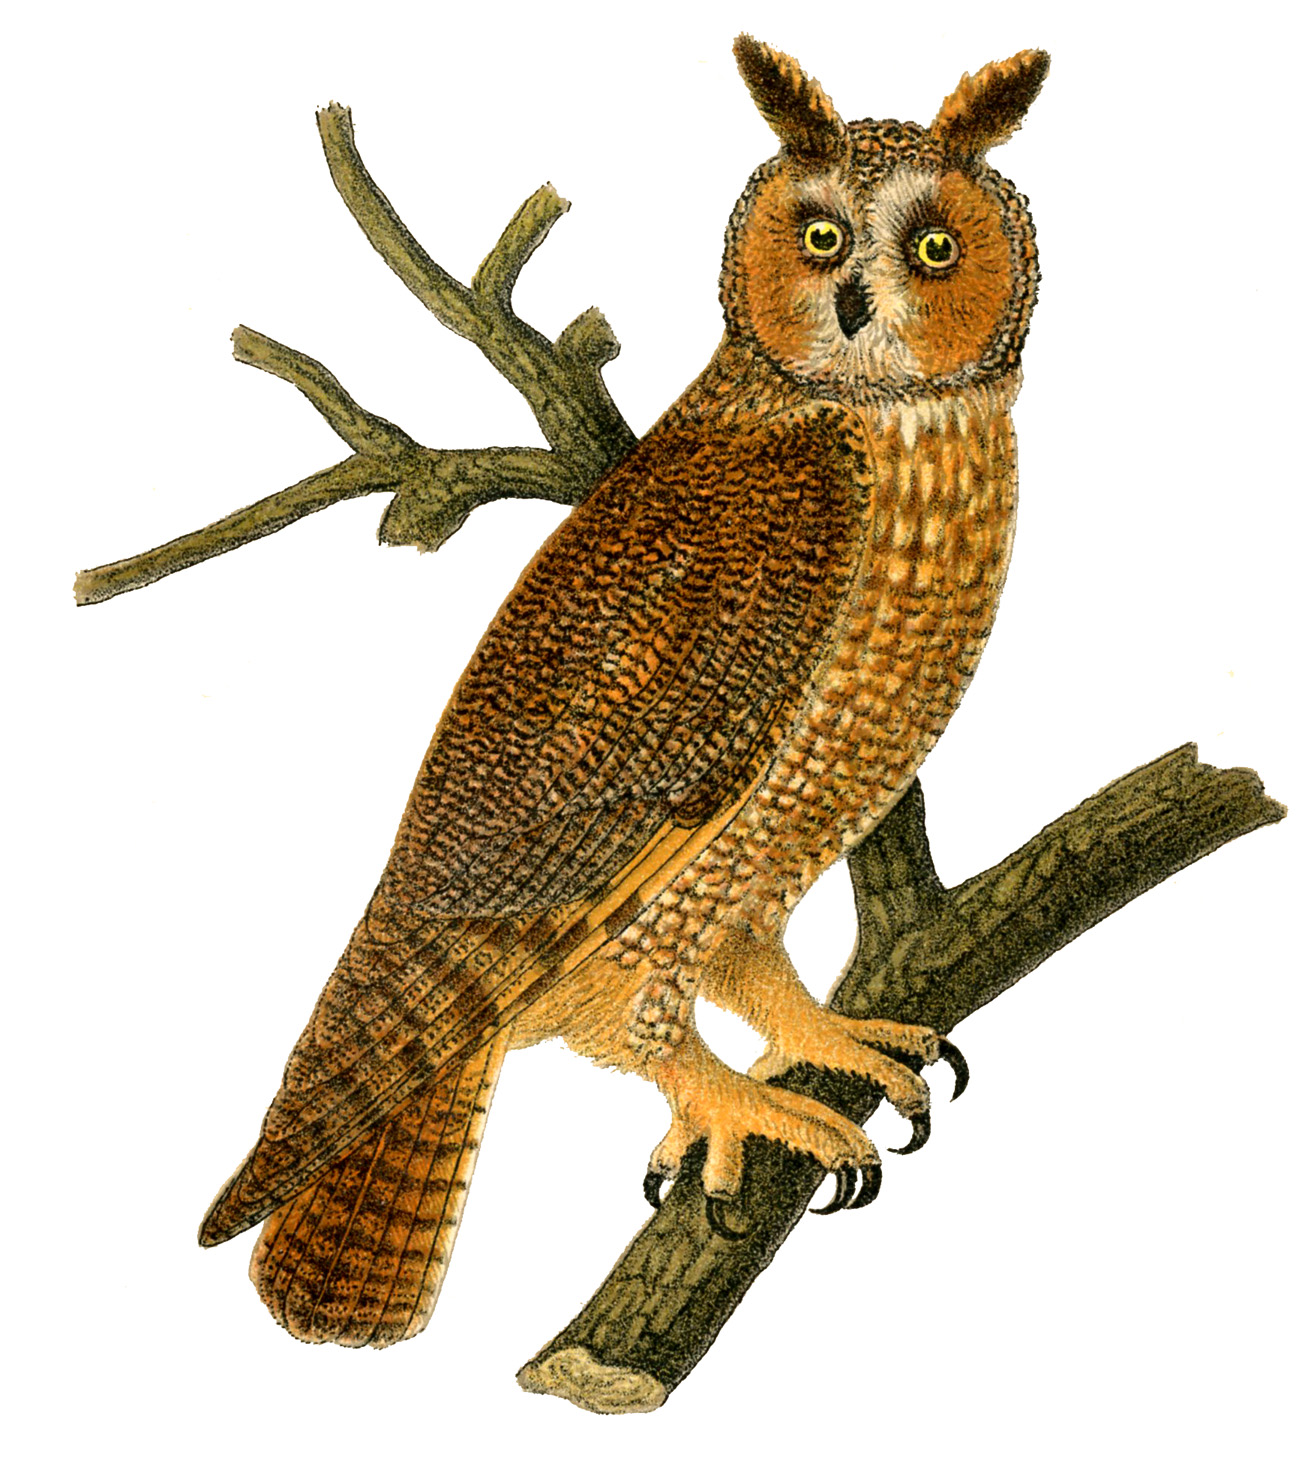 Long Eared Owl clipart #17, Download drawings